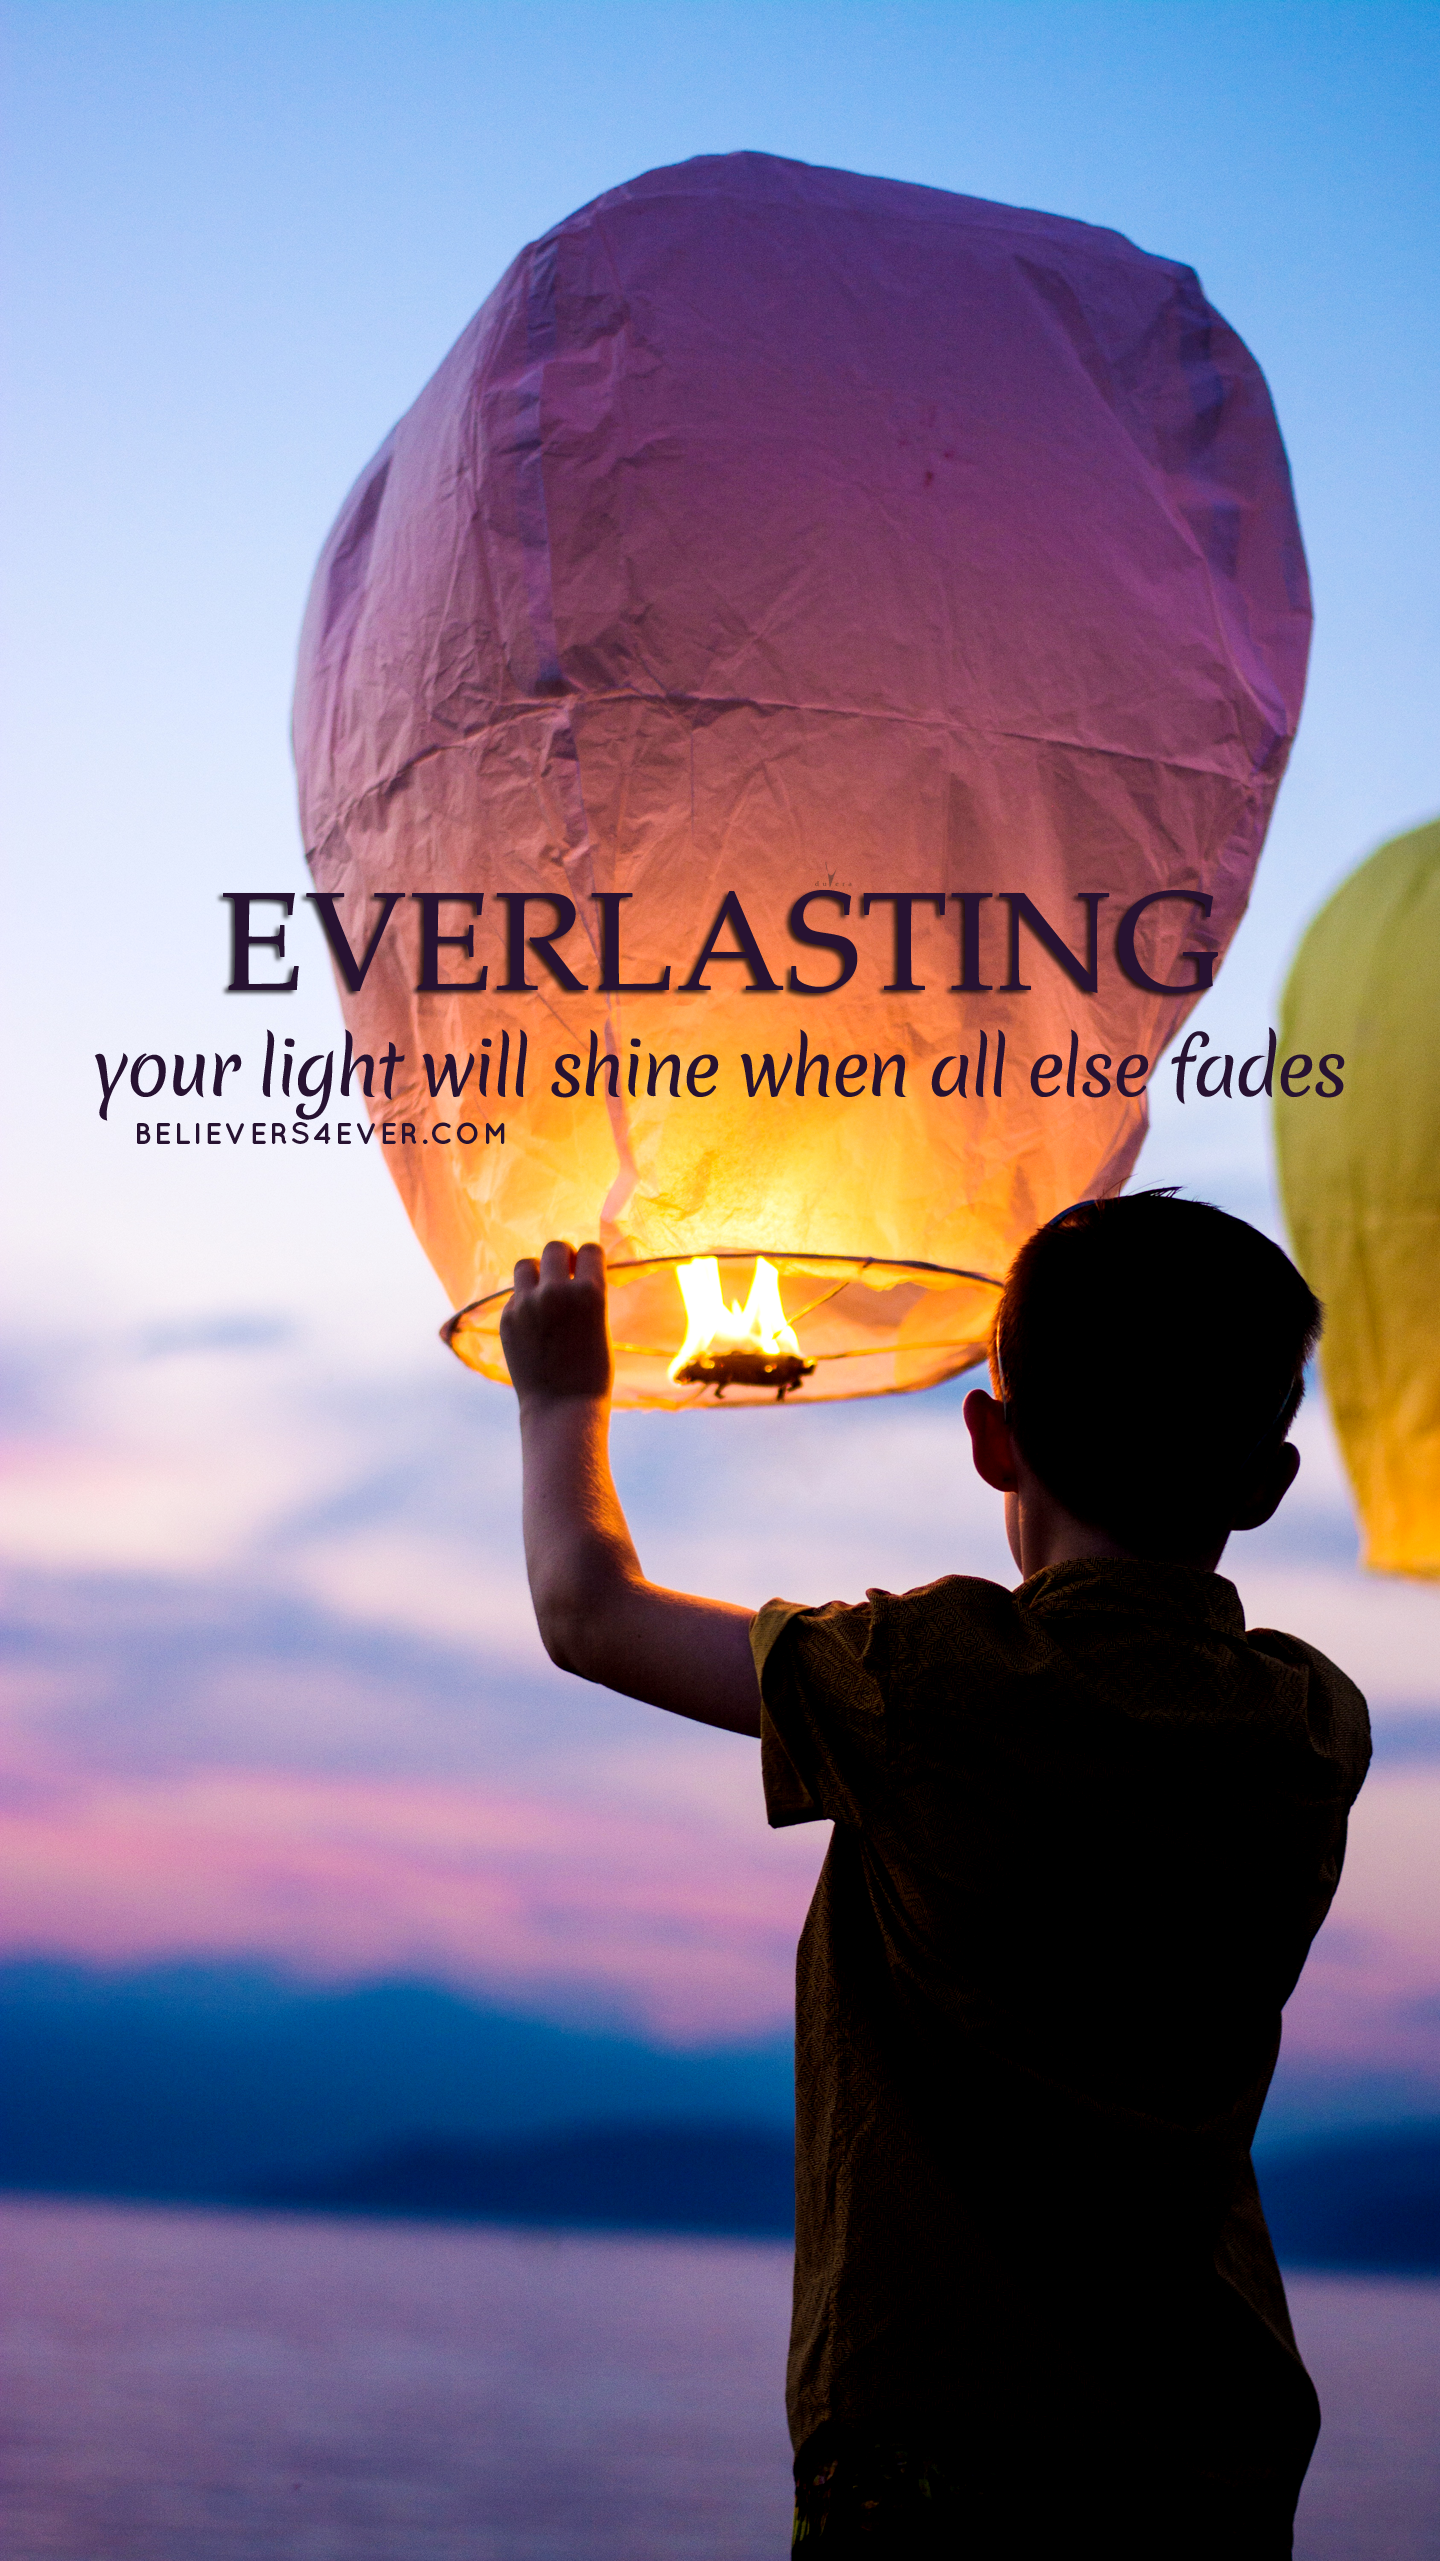 Everlasting, your light will shine when all else fades